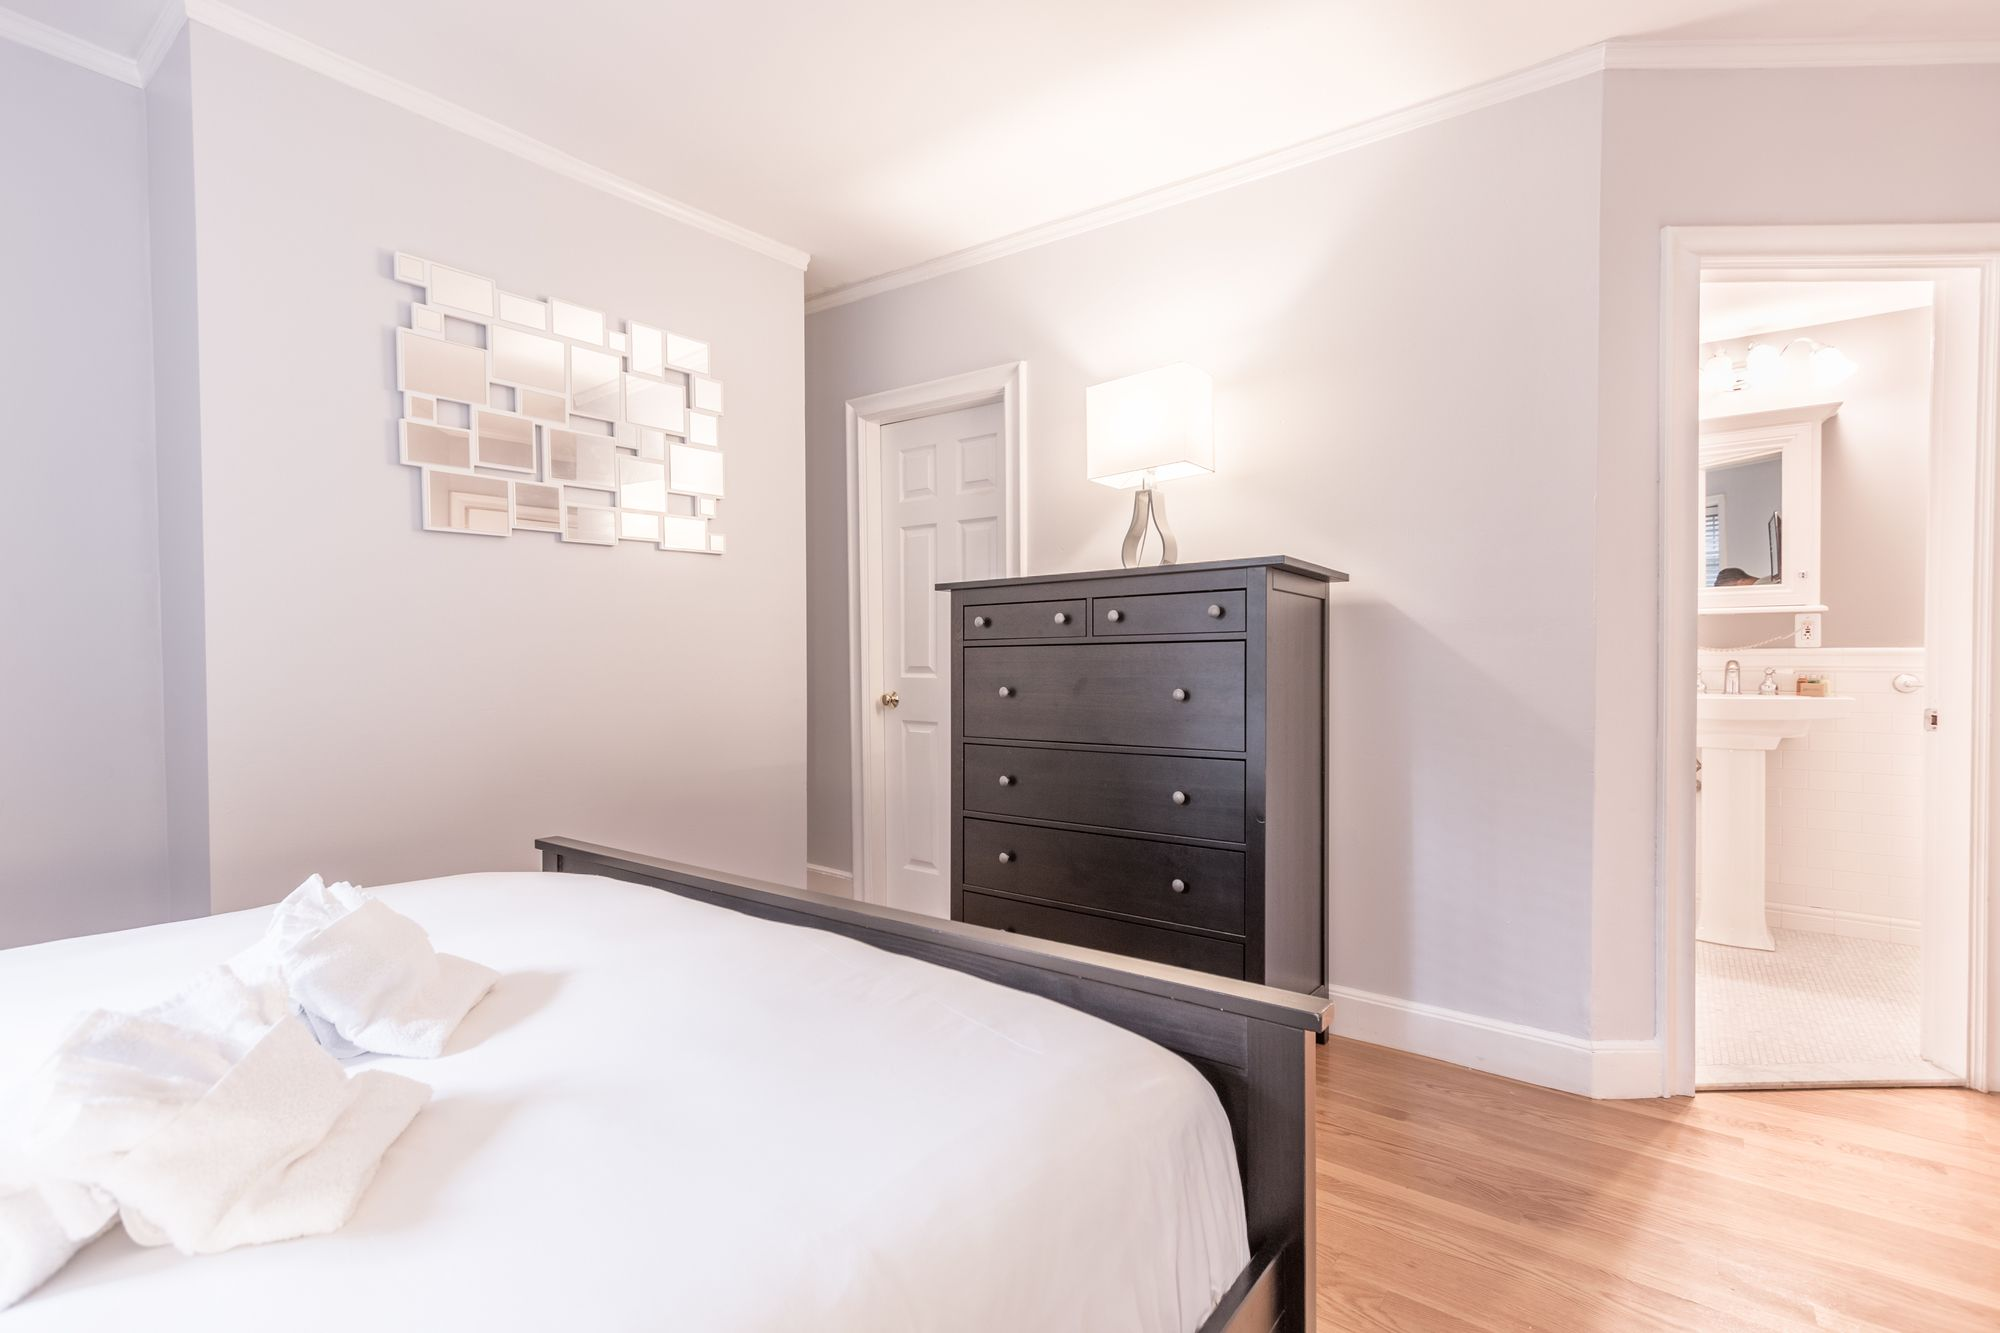 NEW Lovely 2BR in South End by Sonder